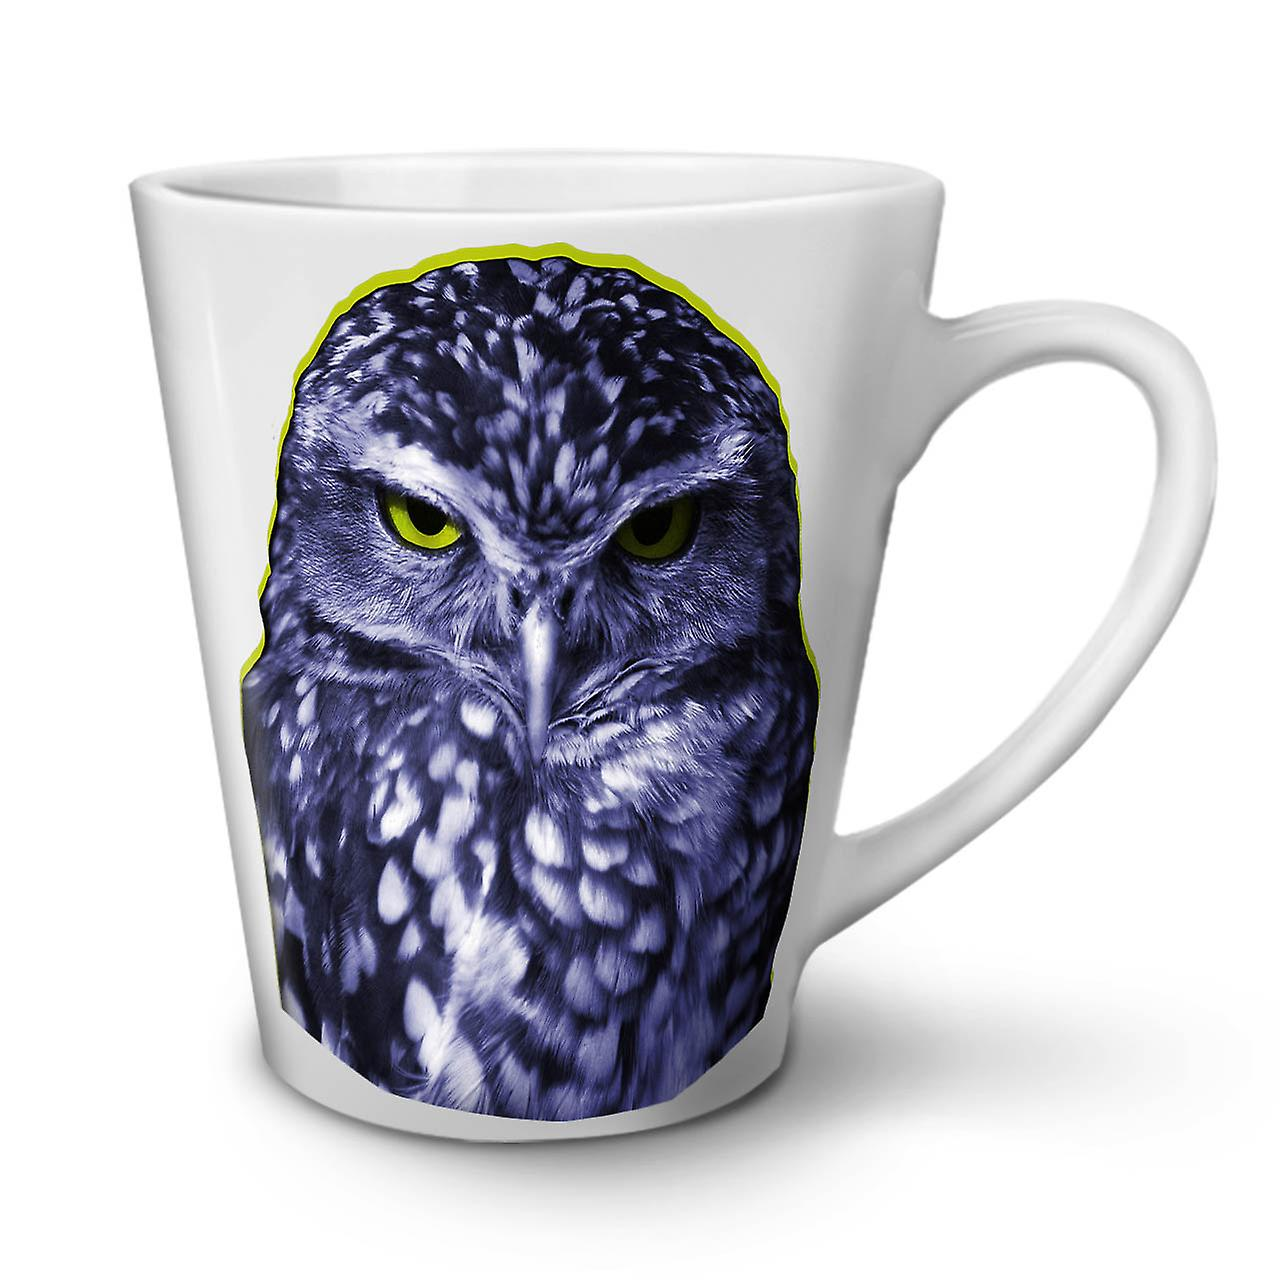 Owl Ceramic Mug Owl Dark Bird Wild New White Tea Coffee Ceramic Latte Mug